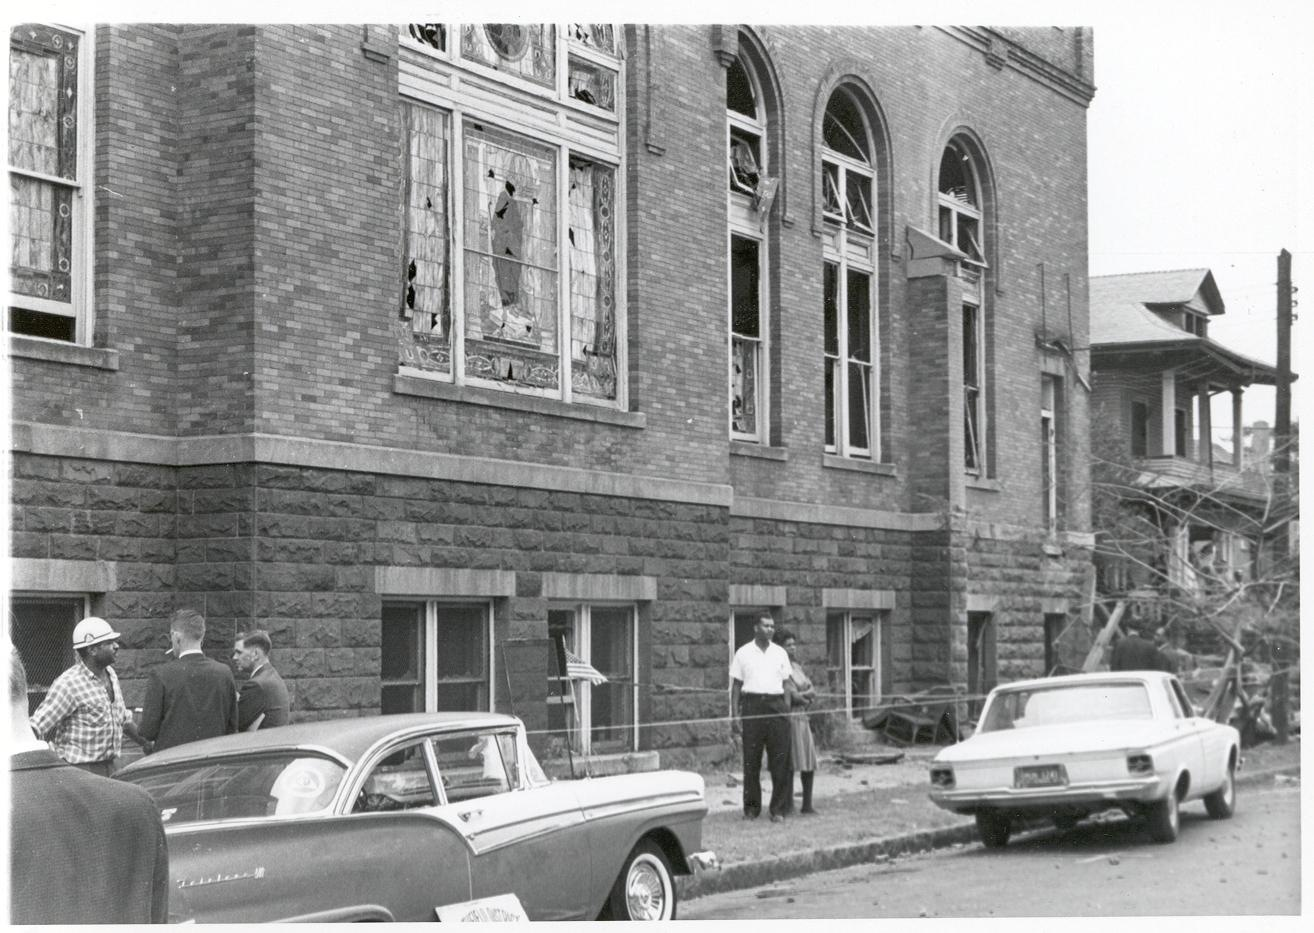 Photo taken at the 16th Street Baptist Church bombing in Birmingham, Alabama on September 15, 1963.